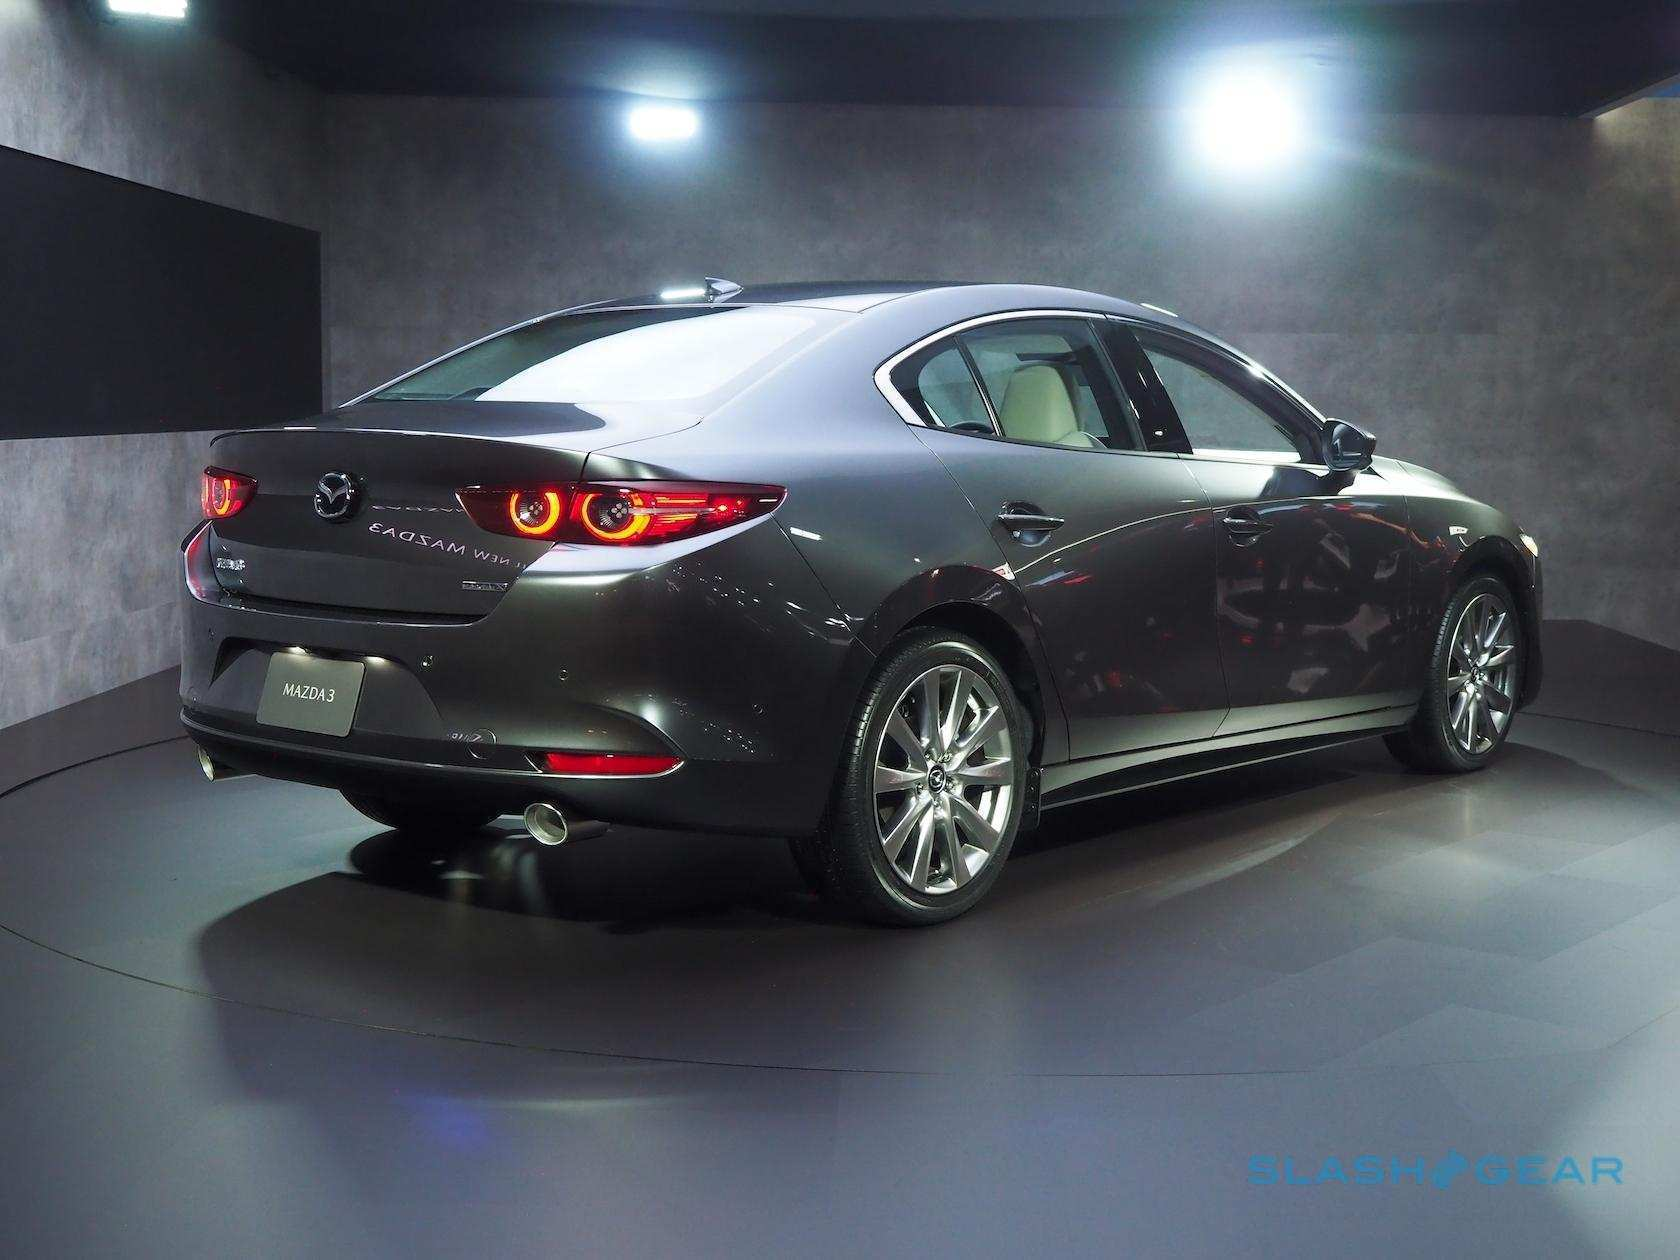 36 Best Review 2020 Mazda 3 Review for 2020 Mazda 3